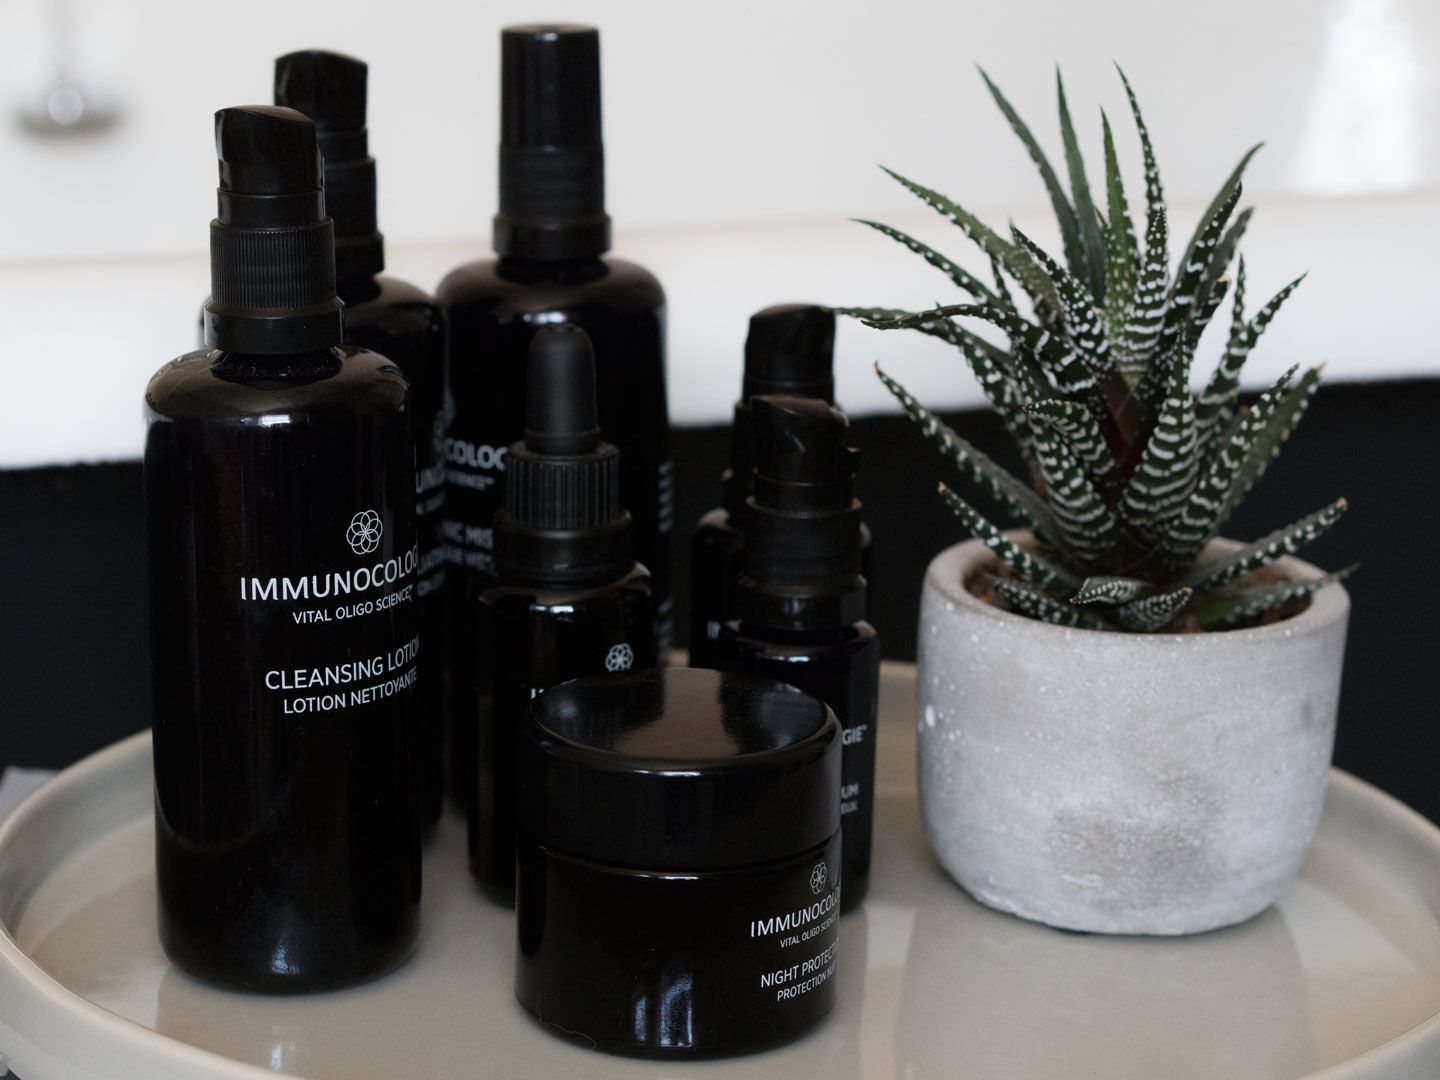 Evening Skincare Ritual with Immunocologie